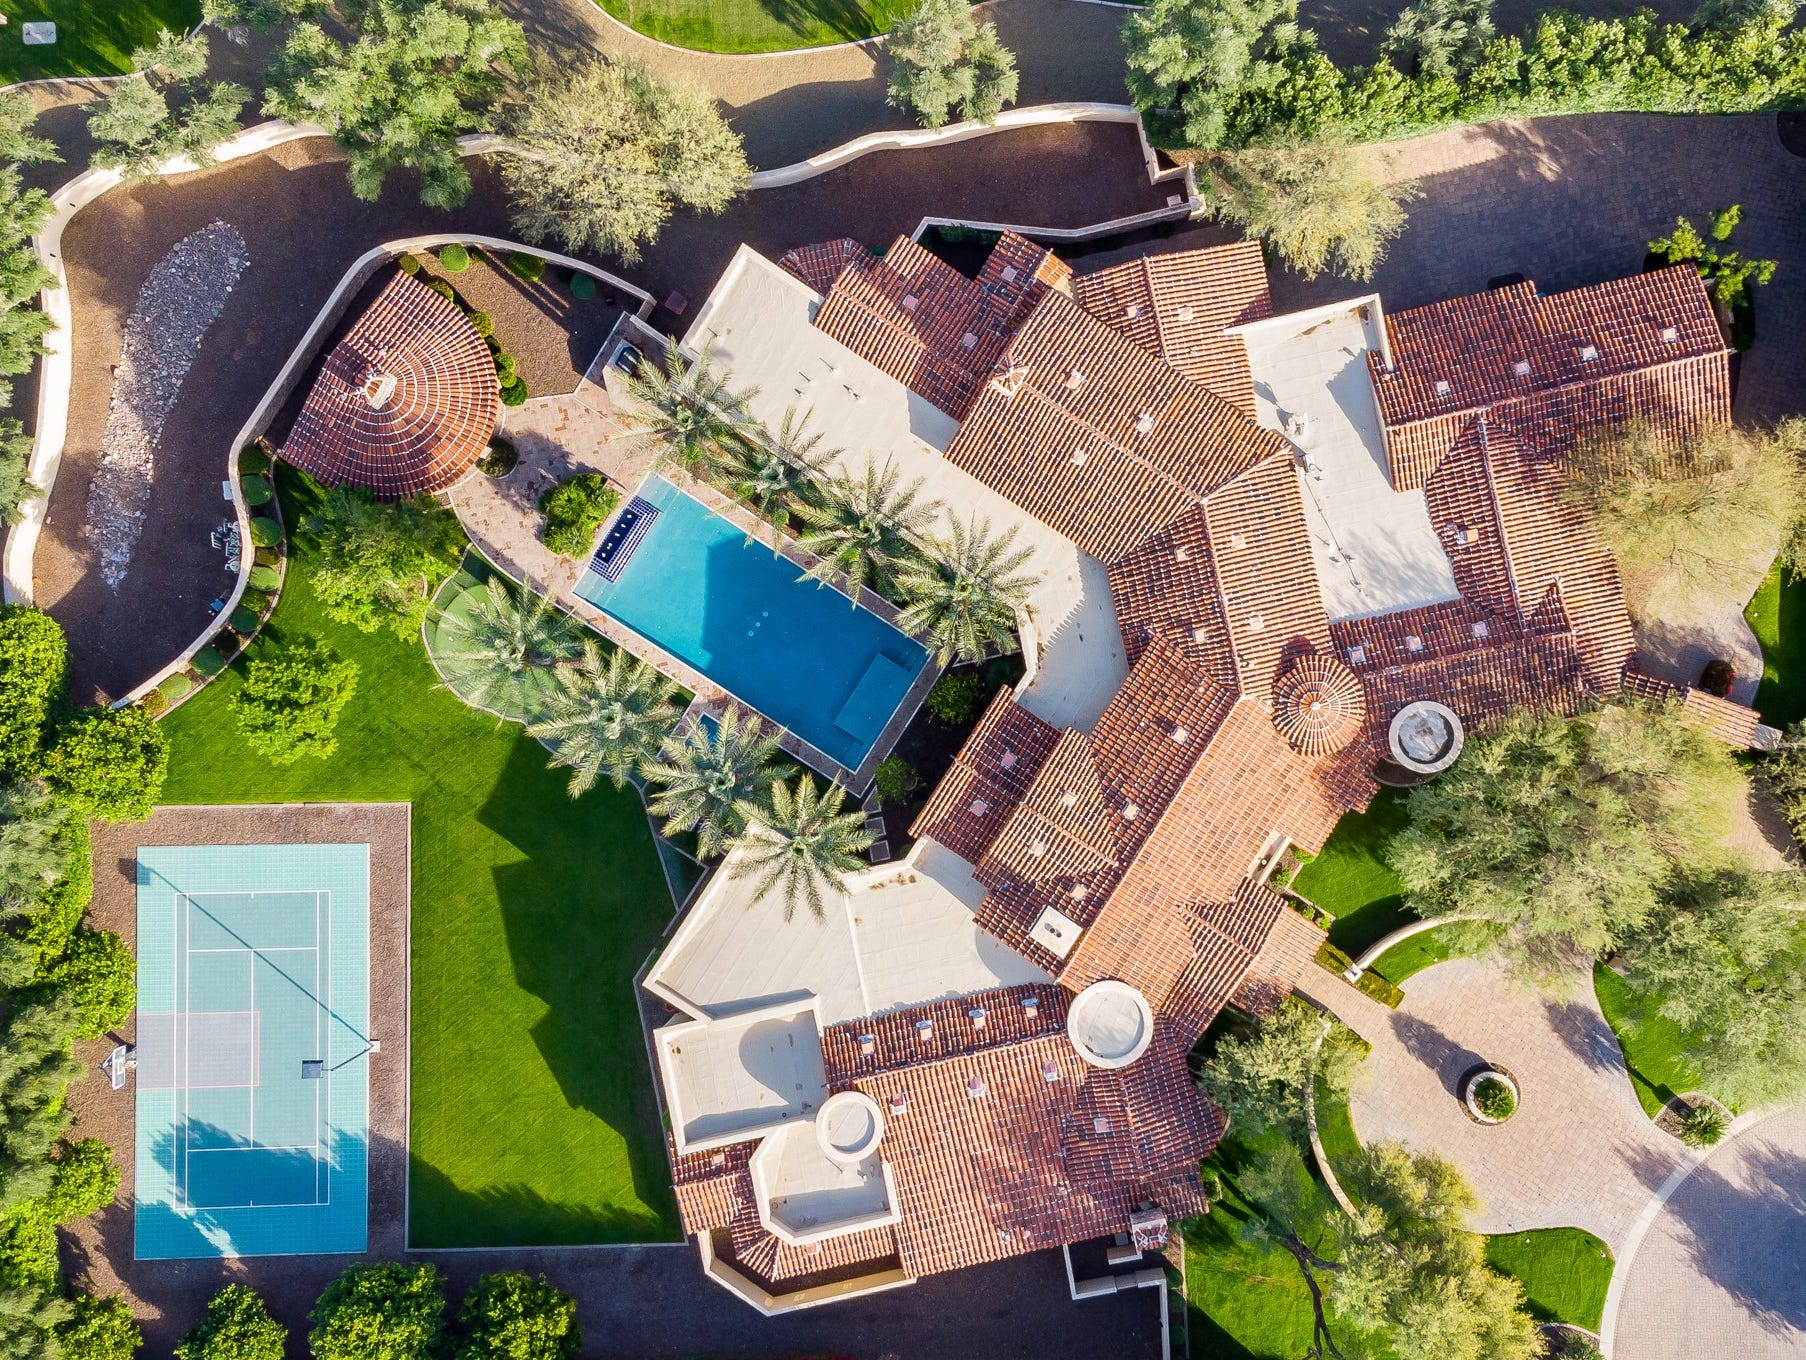 Rajeev and Cynthia Kathuria purchased this 10,200-square-foot estate in Paradise Valley for $3.6M.